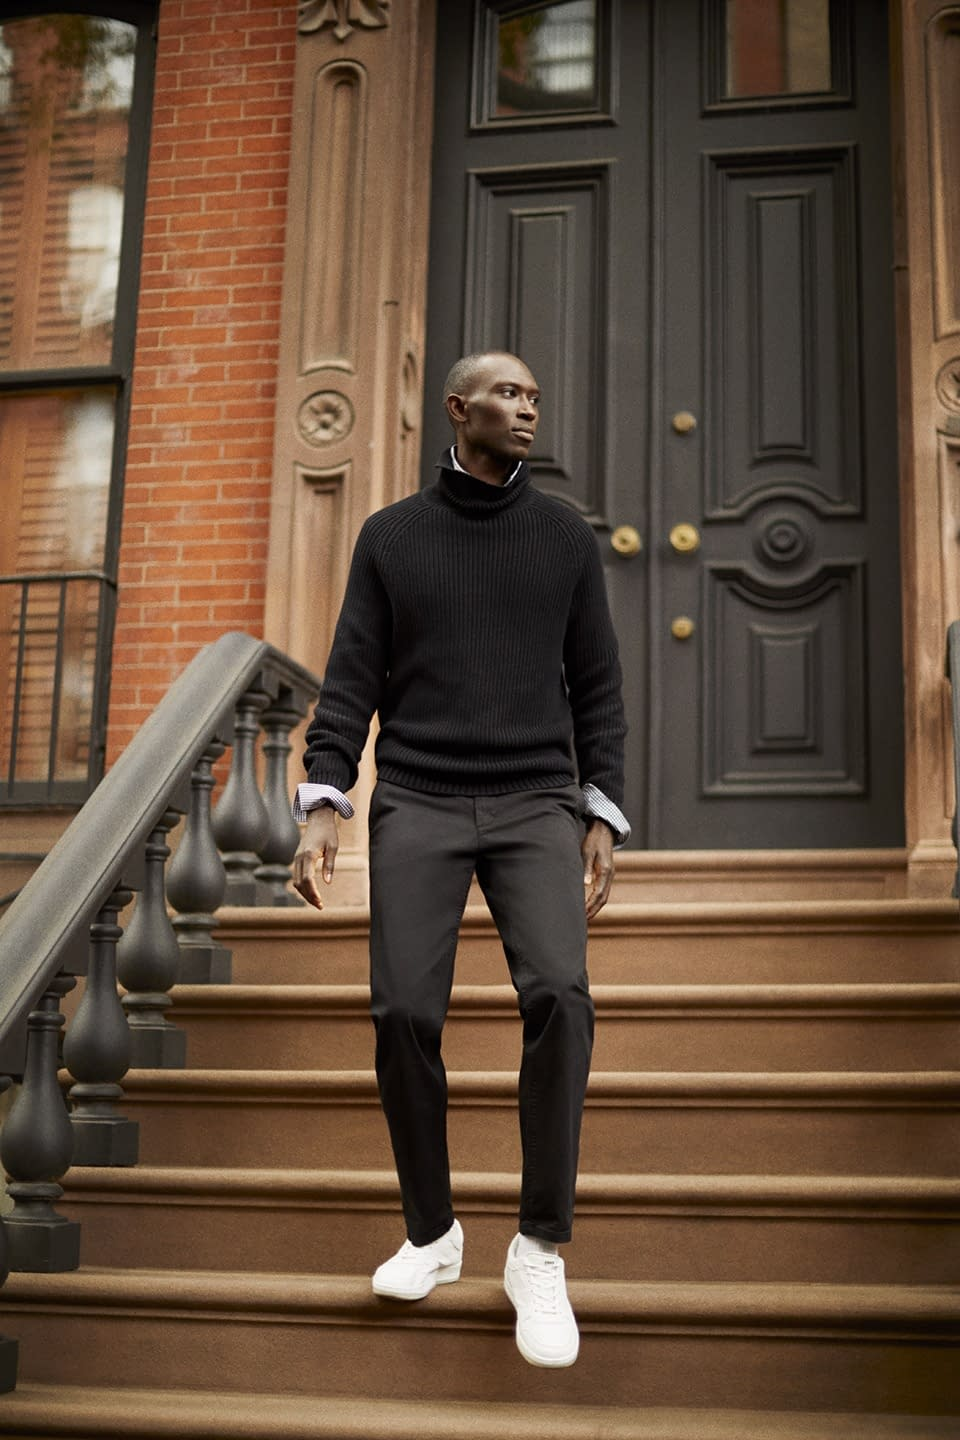 A NEW YORKER - LEFTIES - WITH ARMANDO CABRAL PHOTO BY ENRIC GALCERAN - 18